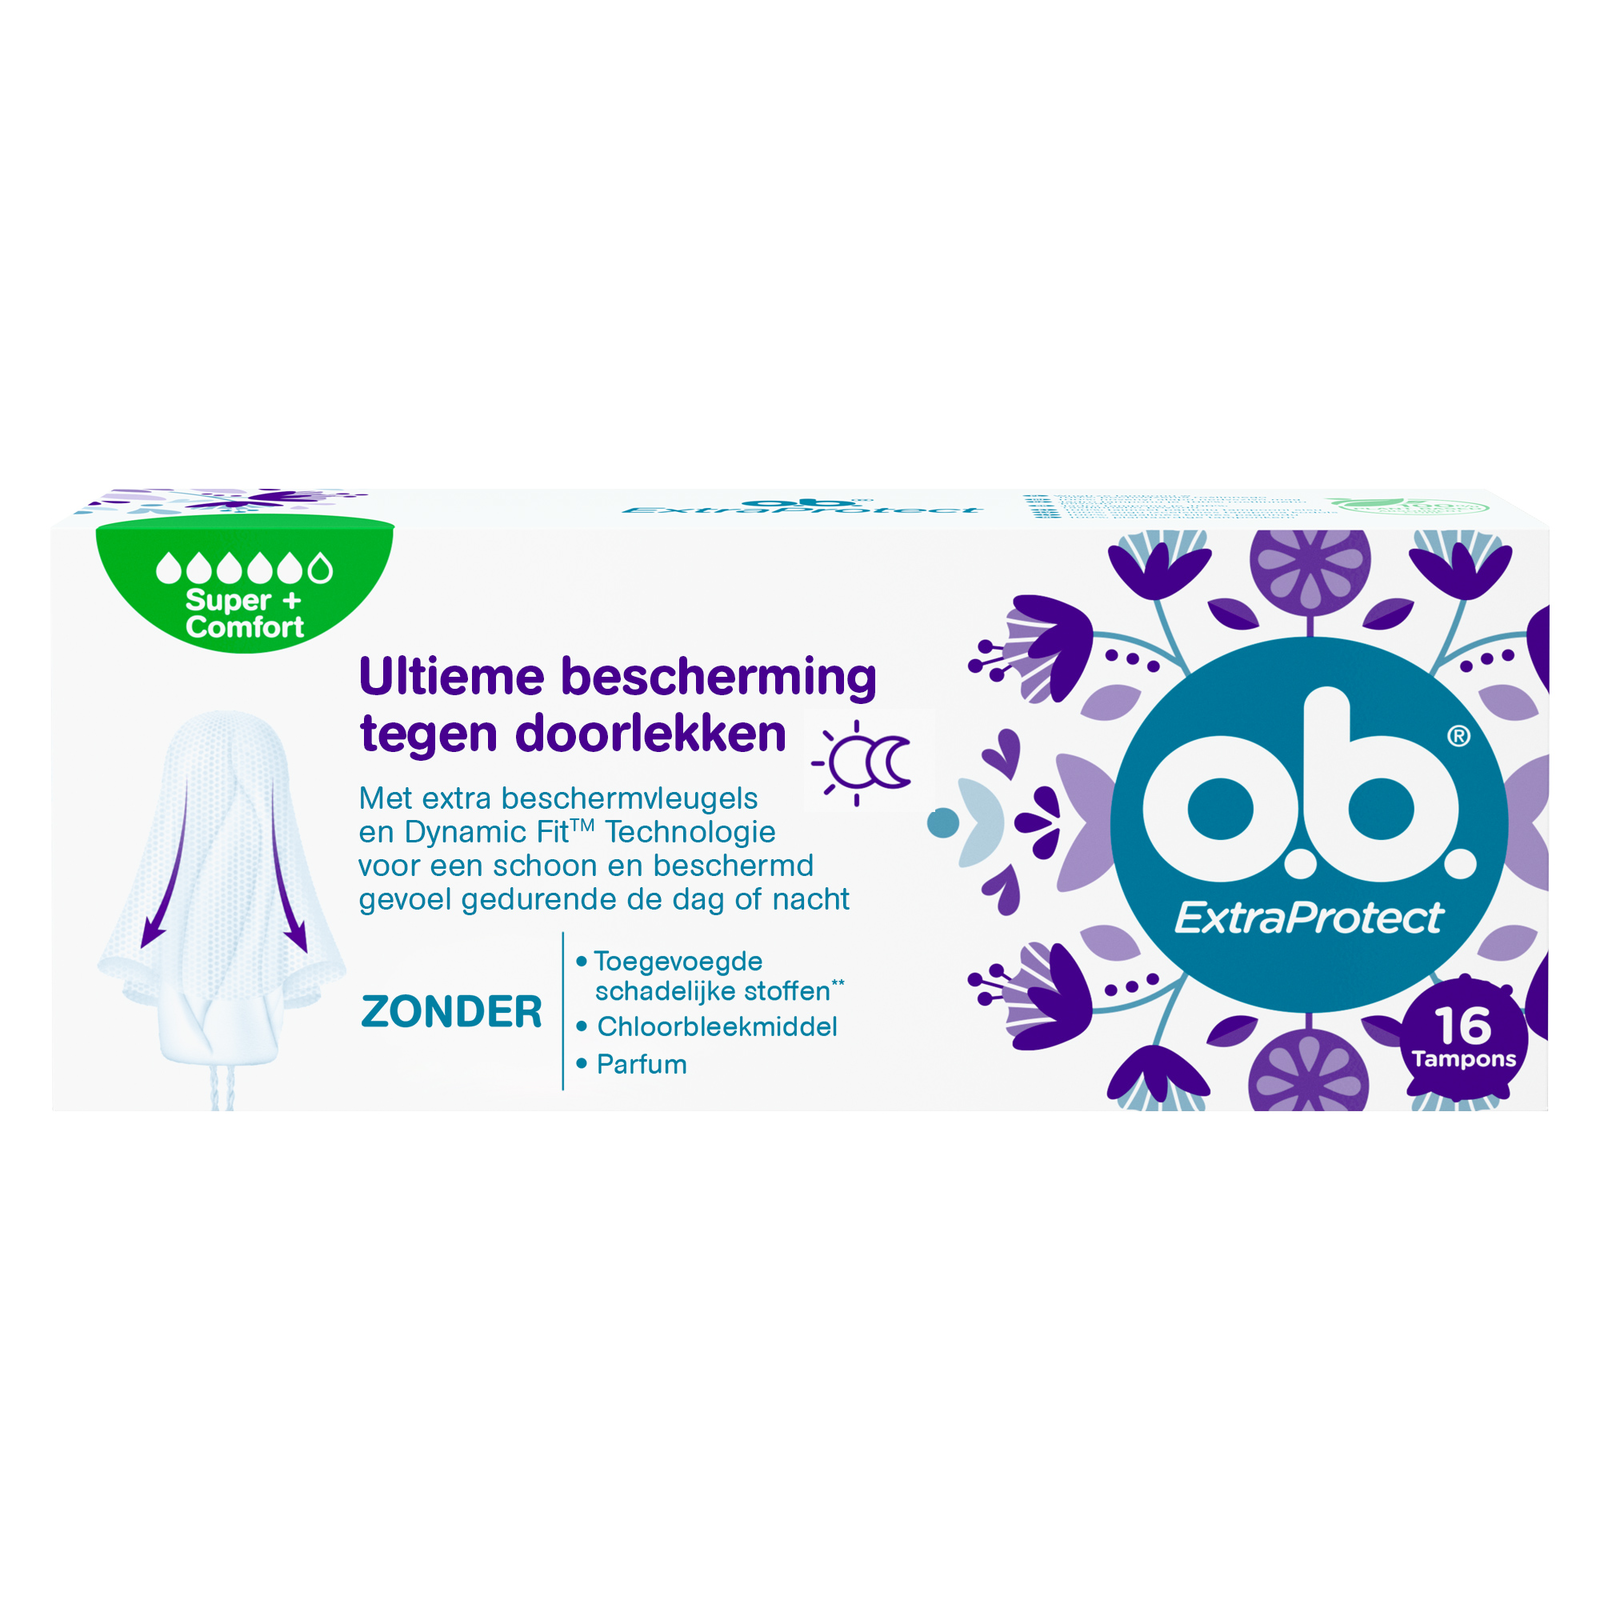 Image of OB Extra Protect Tampons Super + Comfort